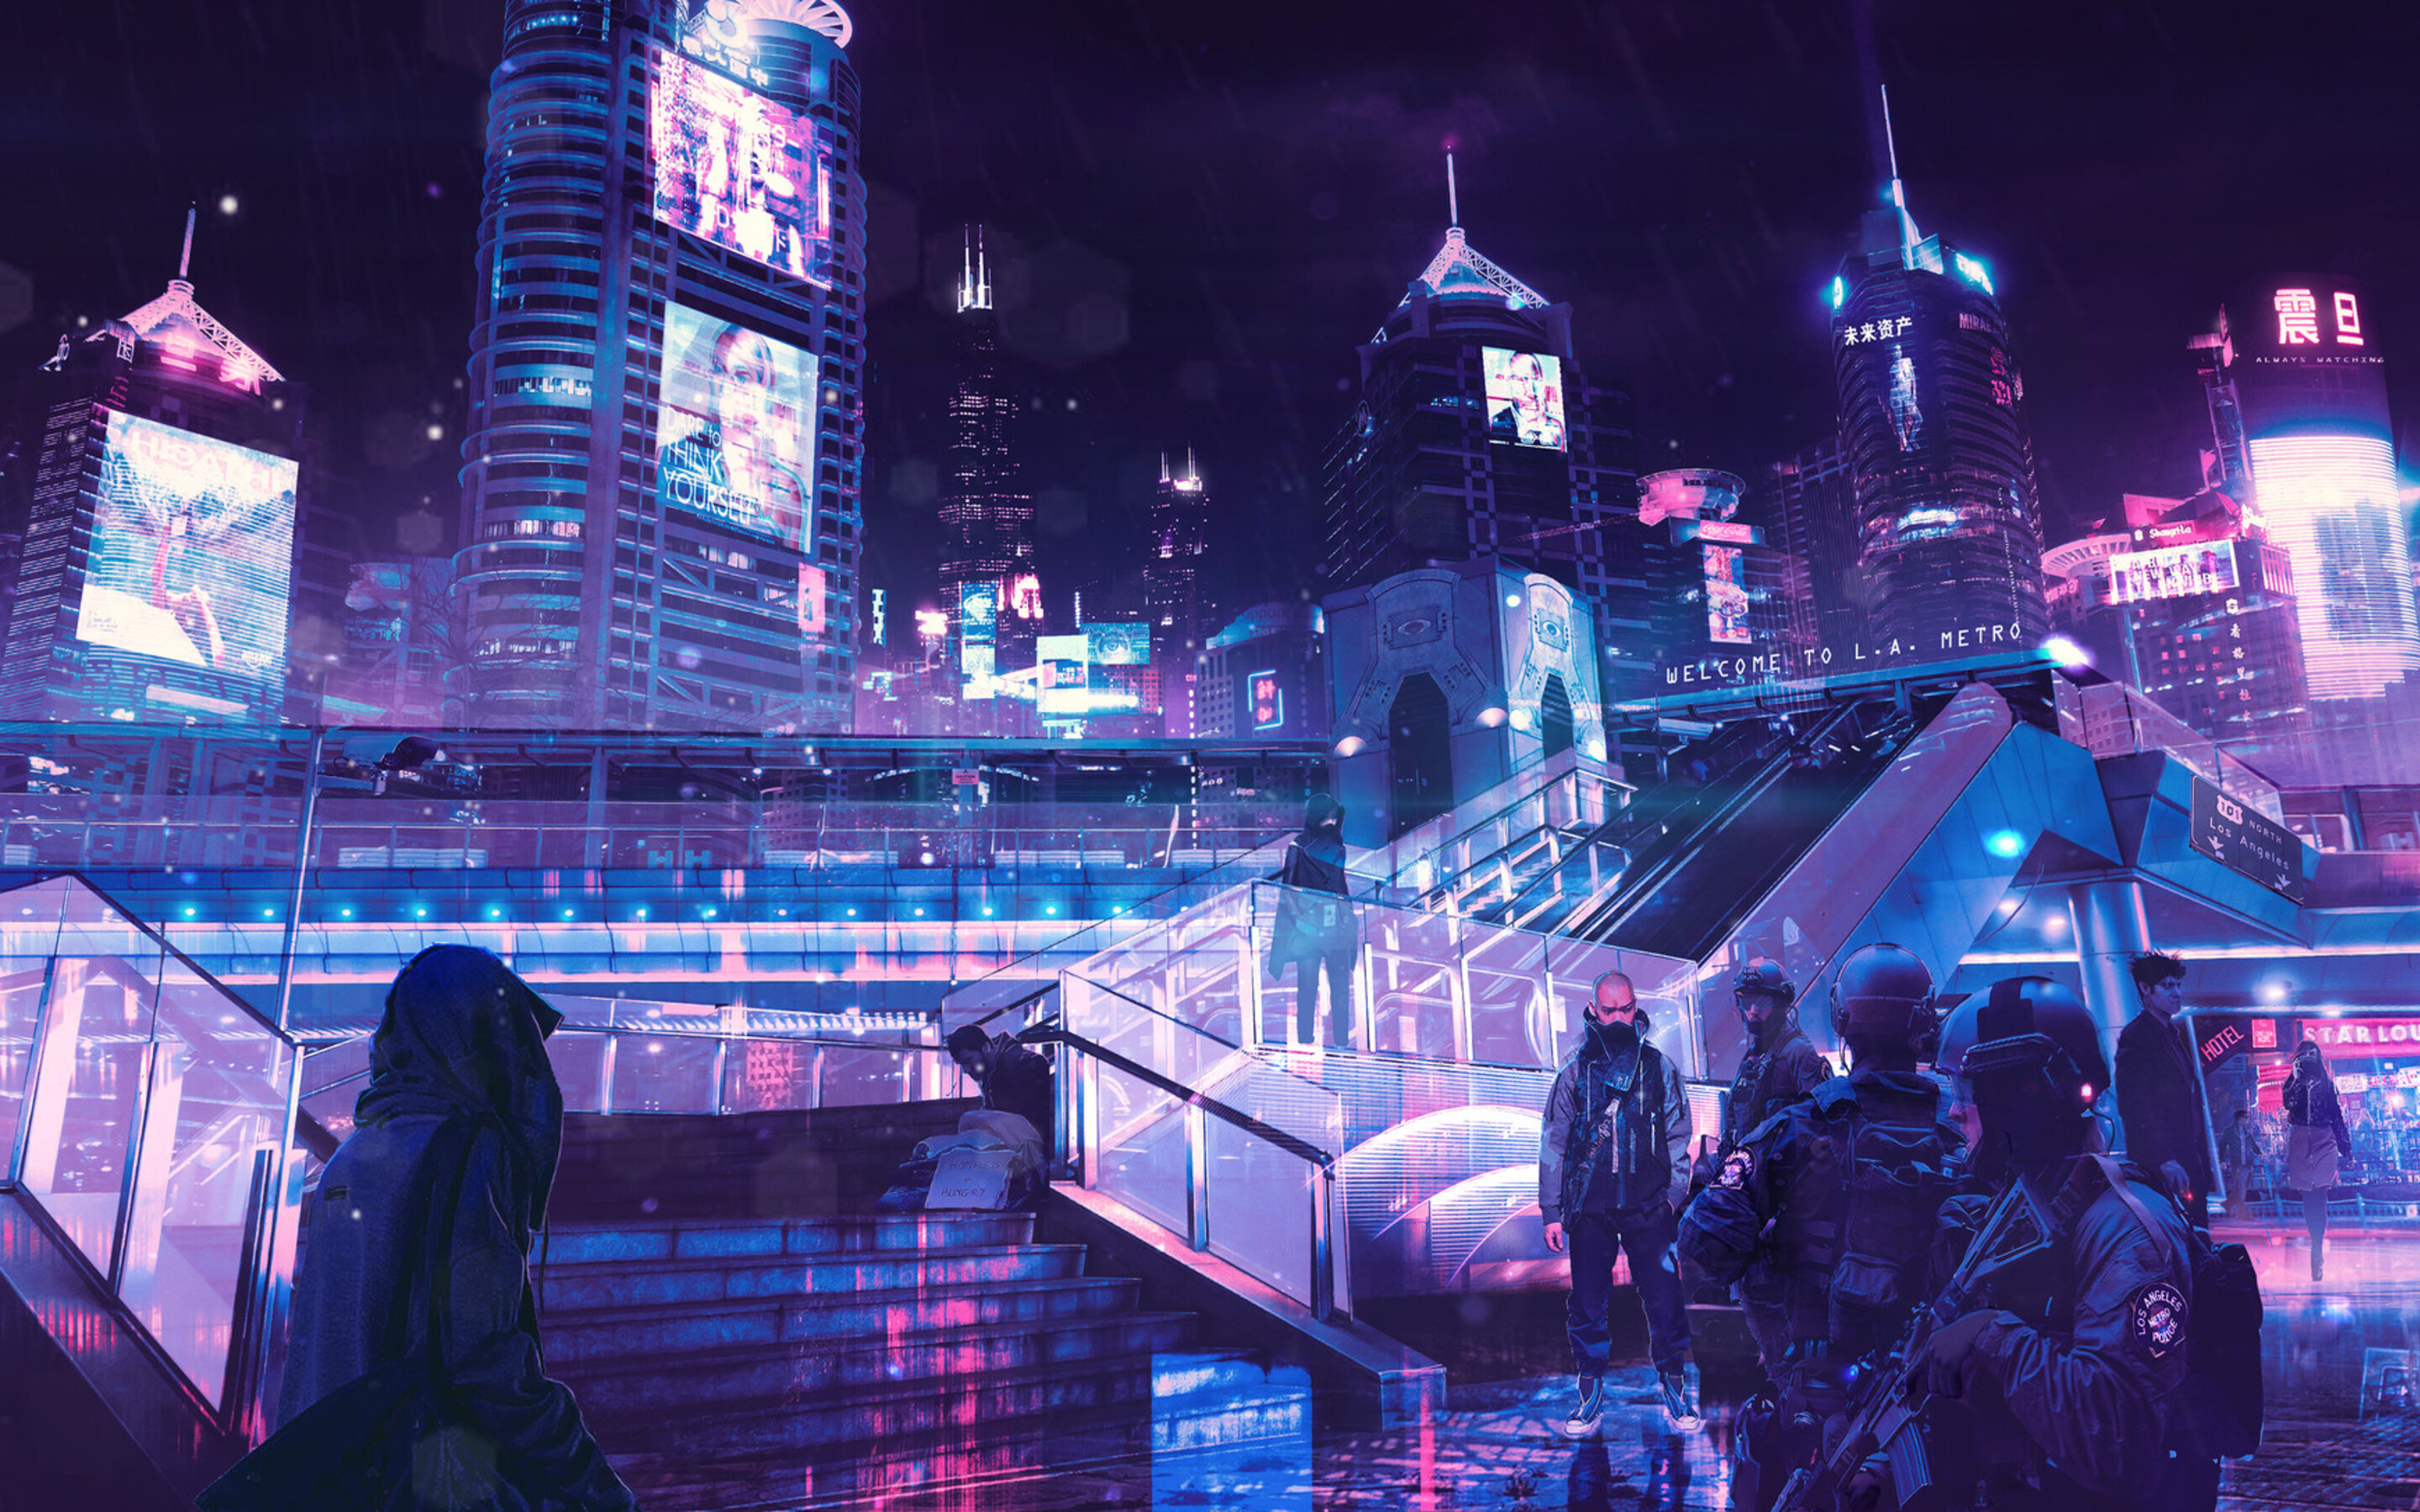 2880x1800 cyberpunk neon city macbook pro retina hd 4k wallpapers